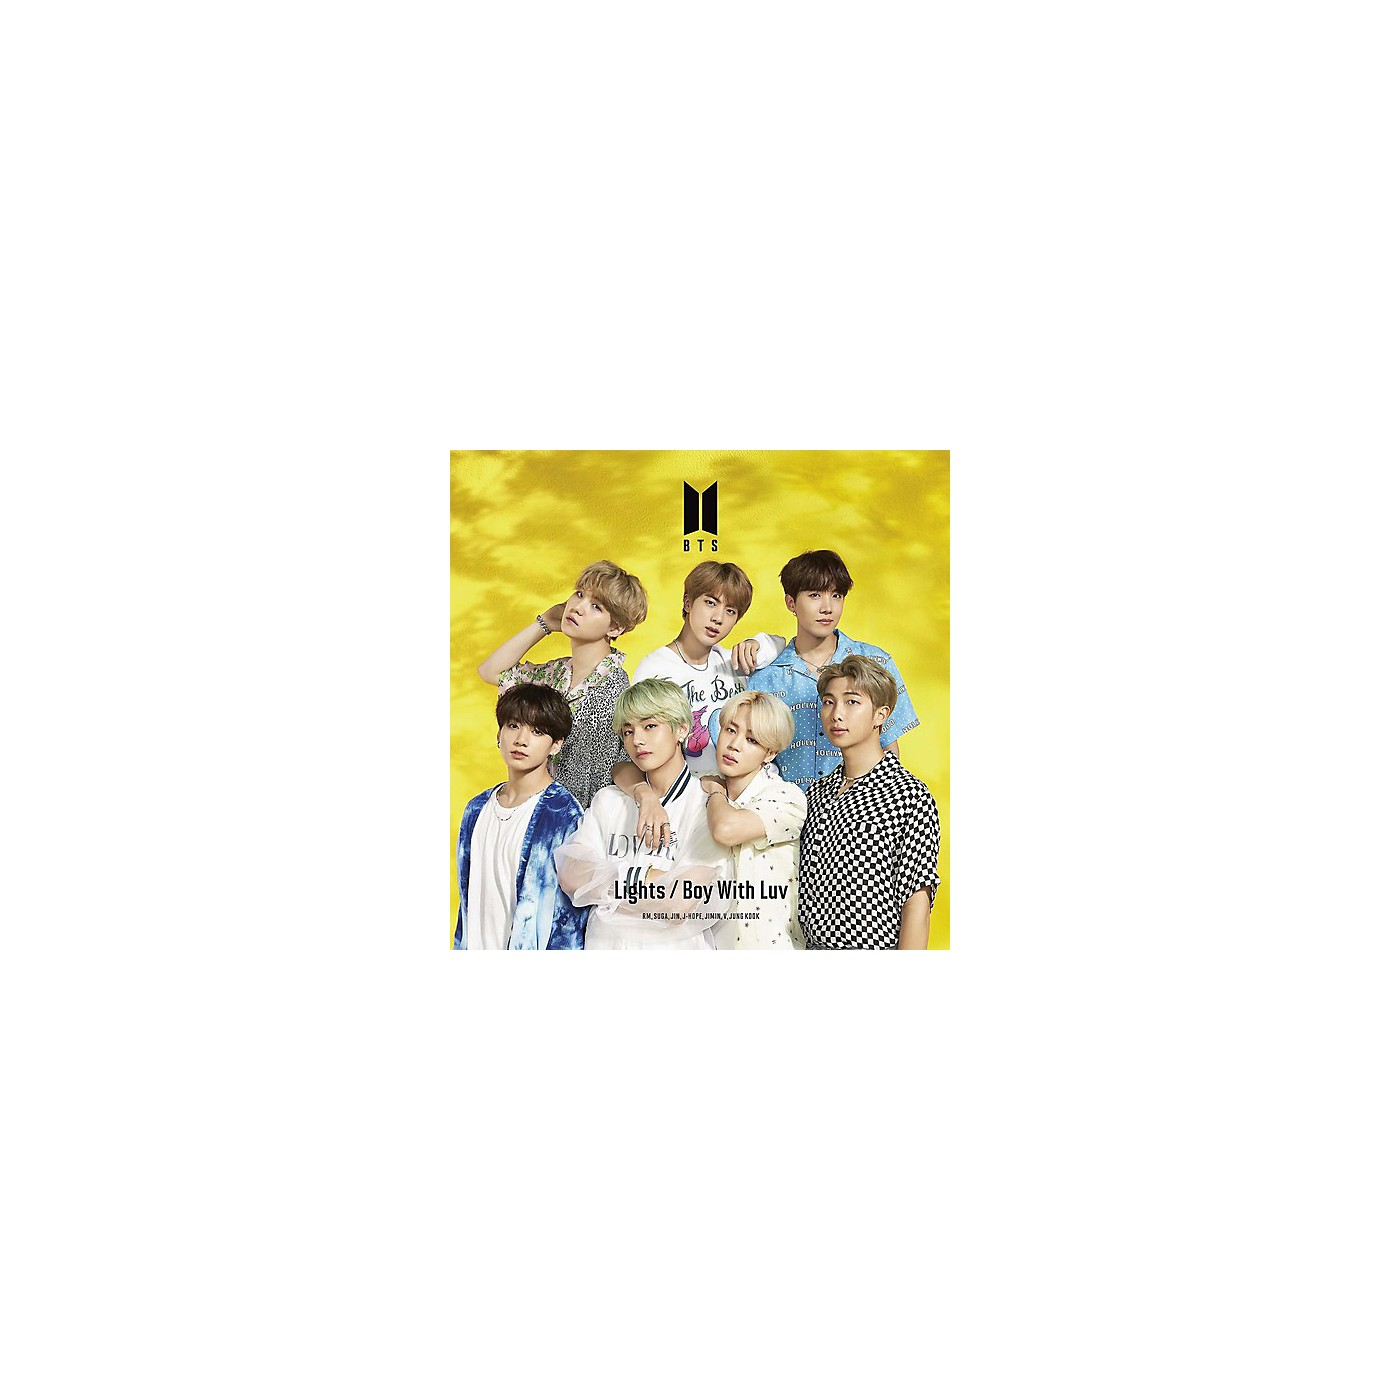 Alliance BTS - Lights / Boy With Luv (CD) thumbnail